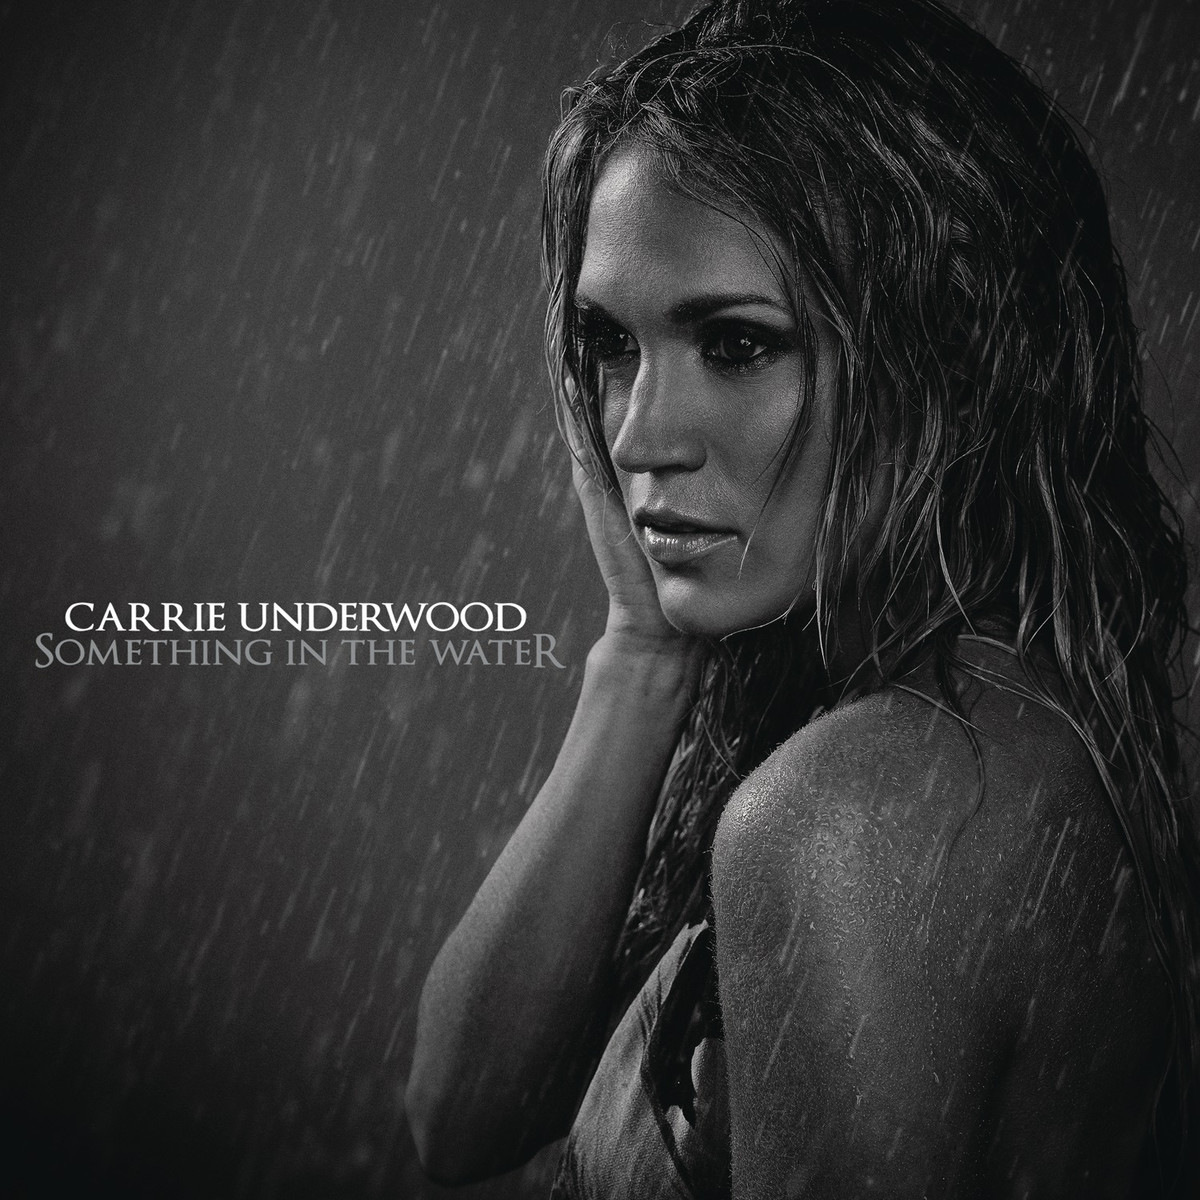 Carrie Underwood Something In The Water cover art